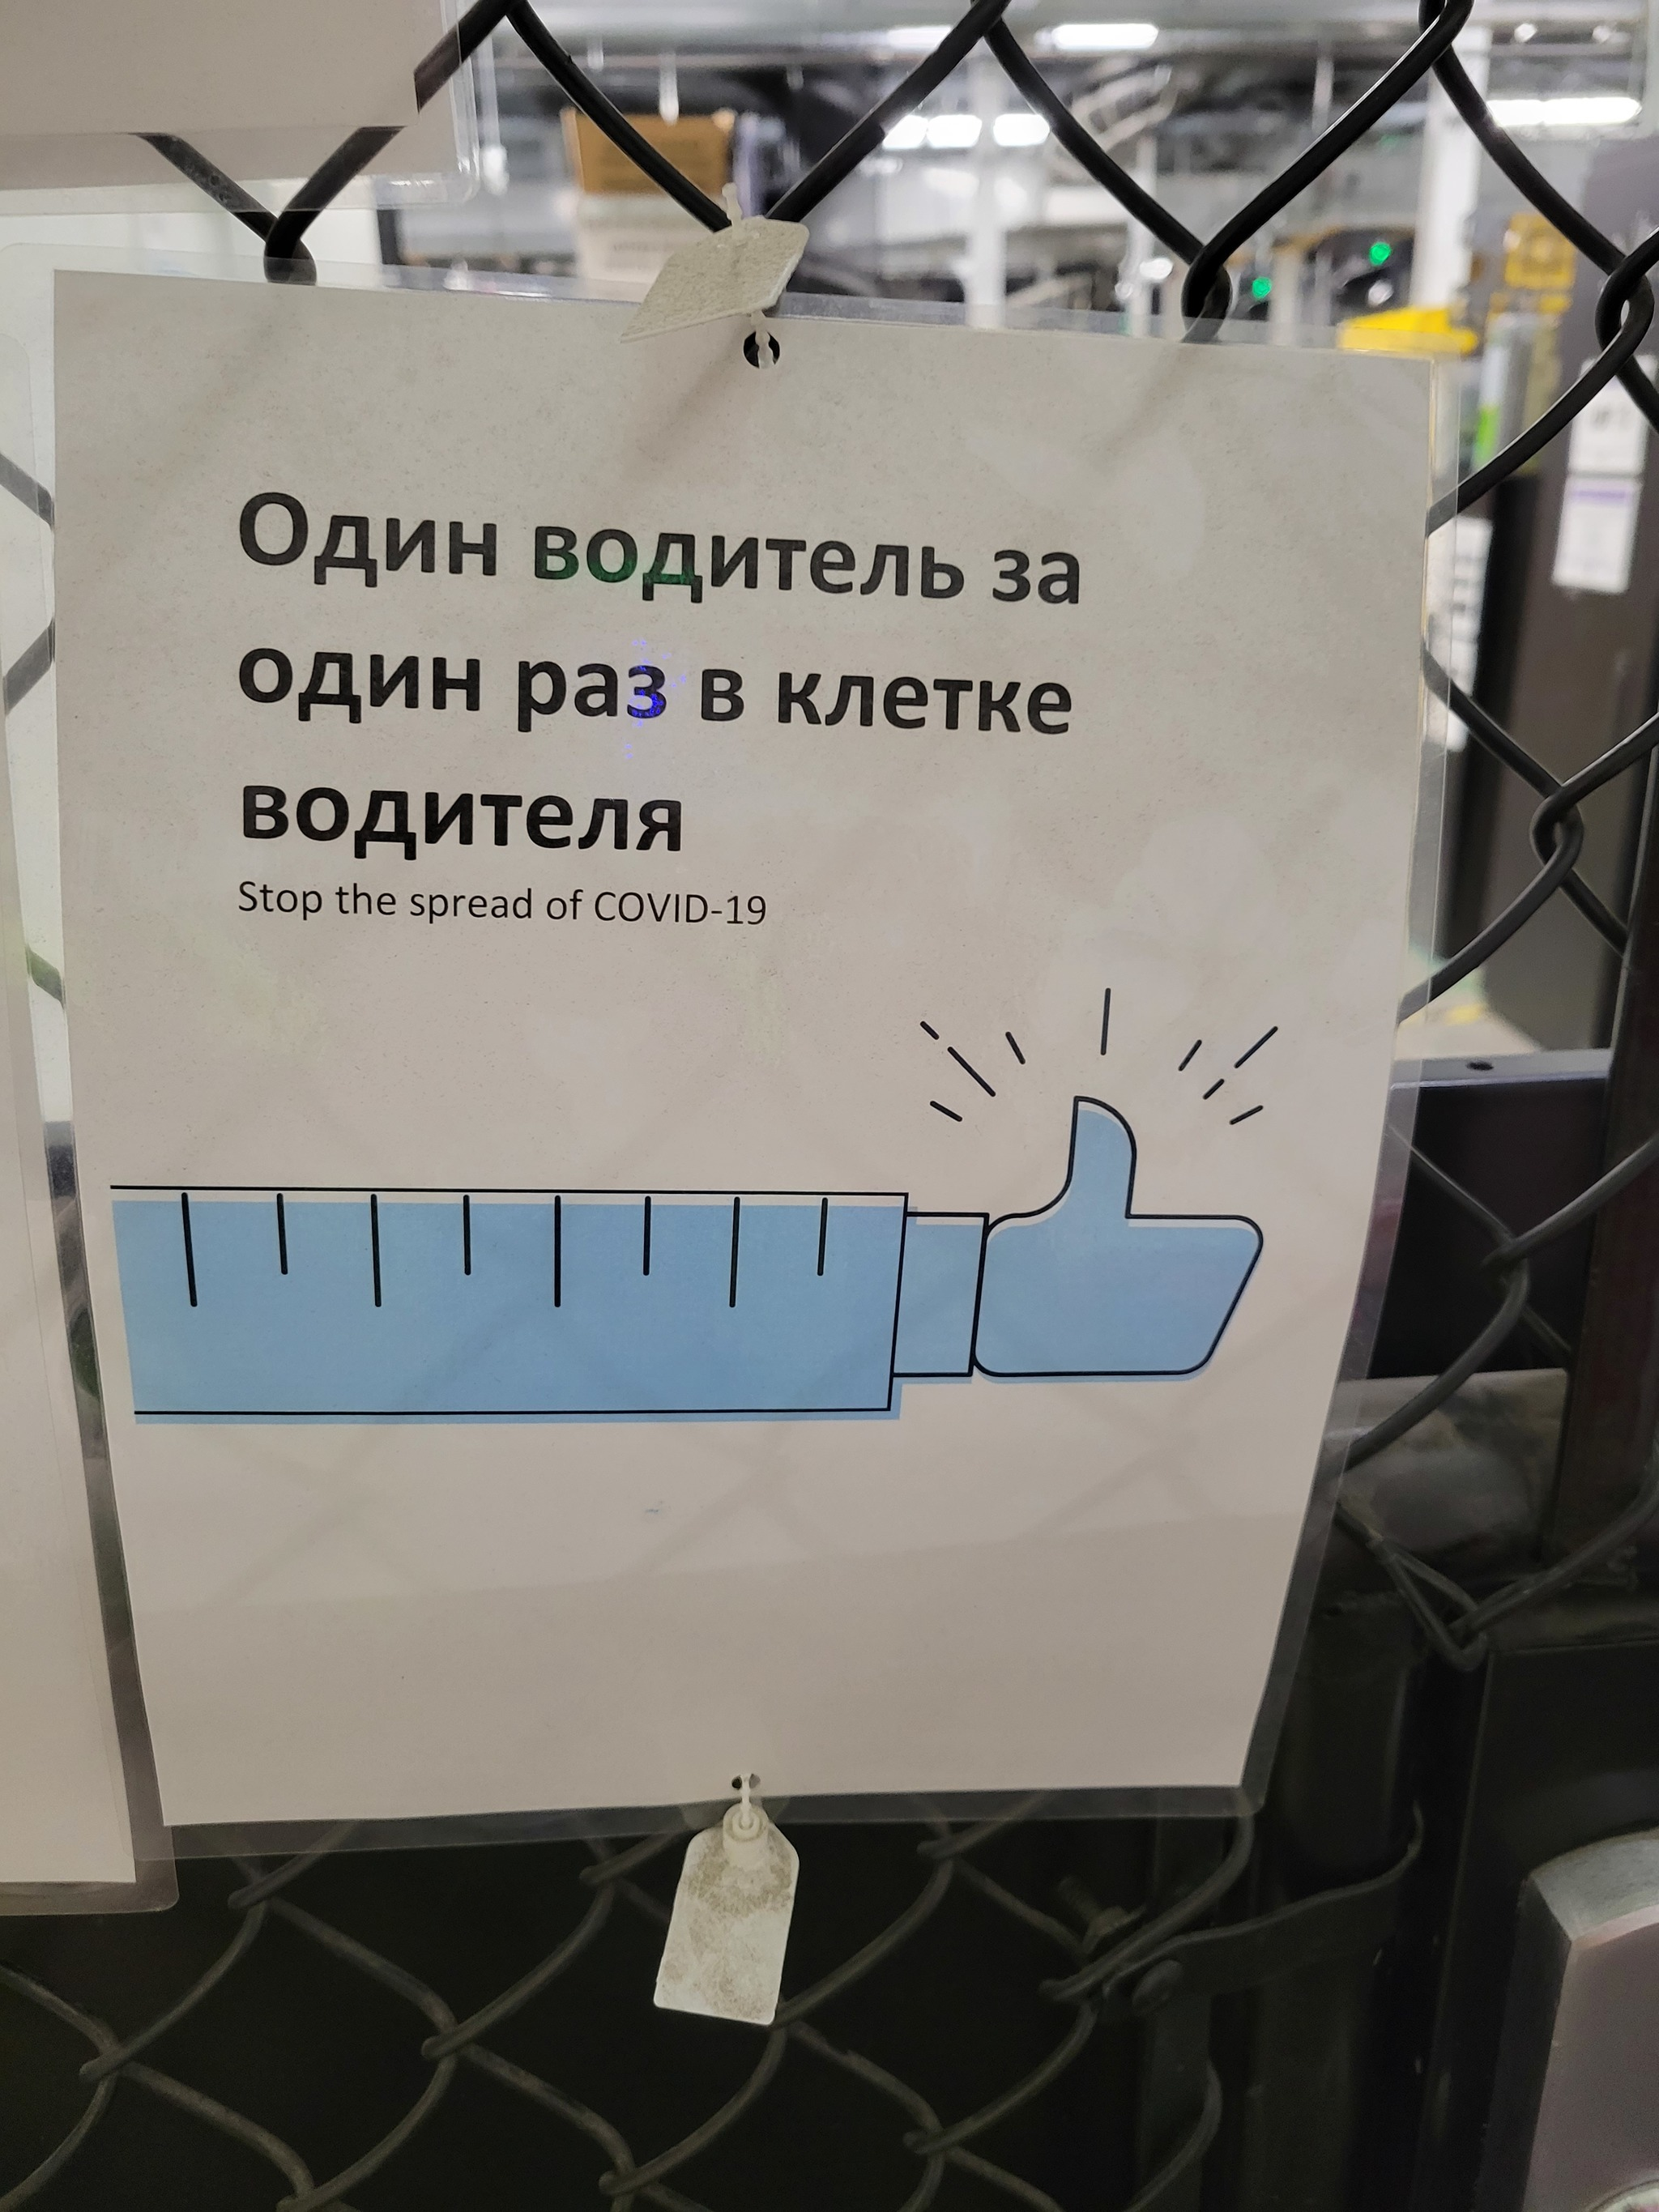 https://cs14.pikabu.ru/post_img/big/2021/02/17/7/161356256915576199.jpg